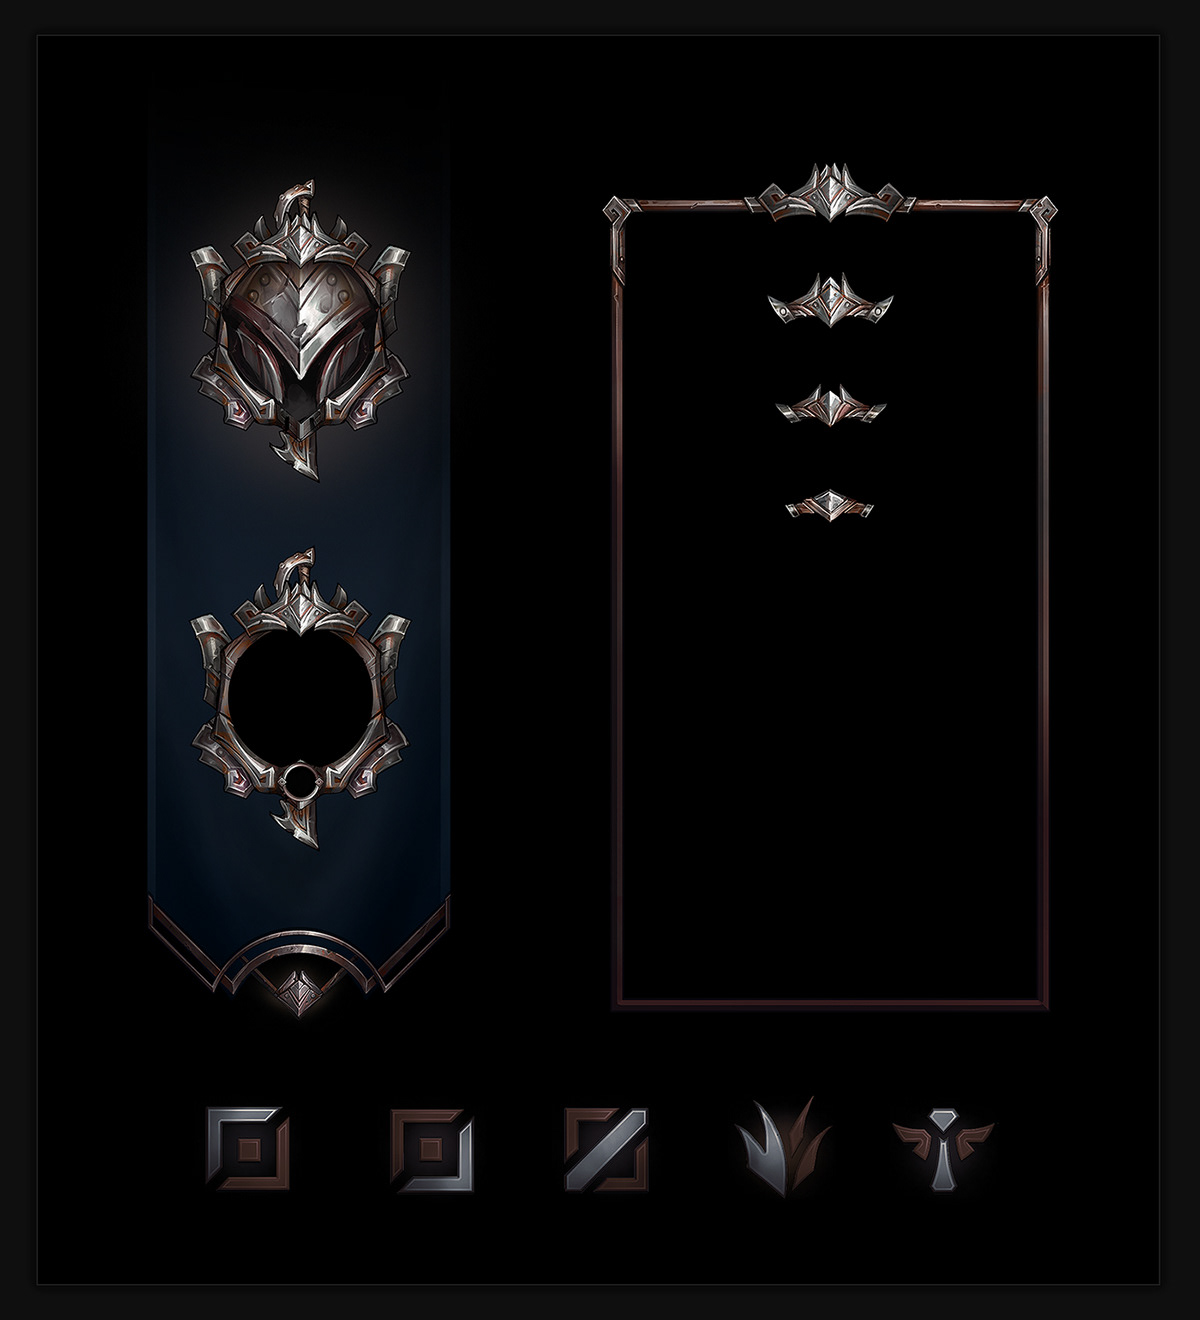 Ranked Ui Assets League Of Legends On Behance